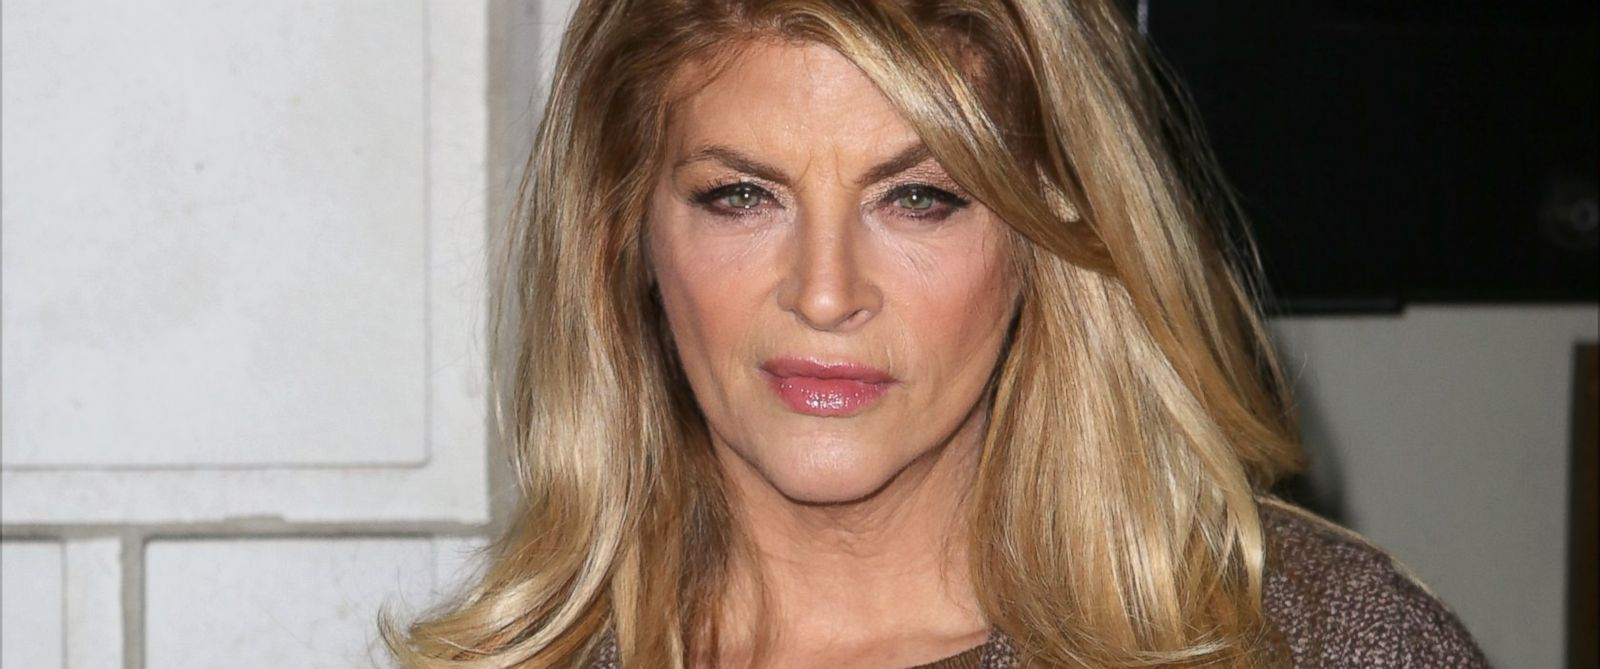 kirstie alley twitterkirstie alley cheers, kirstie alley weight loss, kirstie alley height and weight, kirstie alley 1997, kirstie alley fet, kirstie alley wendy williams, kirstie alley fergie look alike, kirstie alley gif, kirstie alley 2016, kirstie alley instagram, kirstie alley twitter, kirstie alley facebook, kirstie alley model, kirstie alley prince, kirstie alley 1987, kirstie alley listal